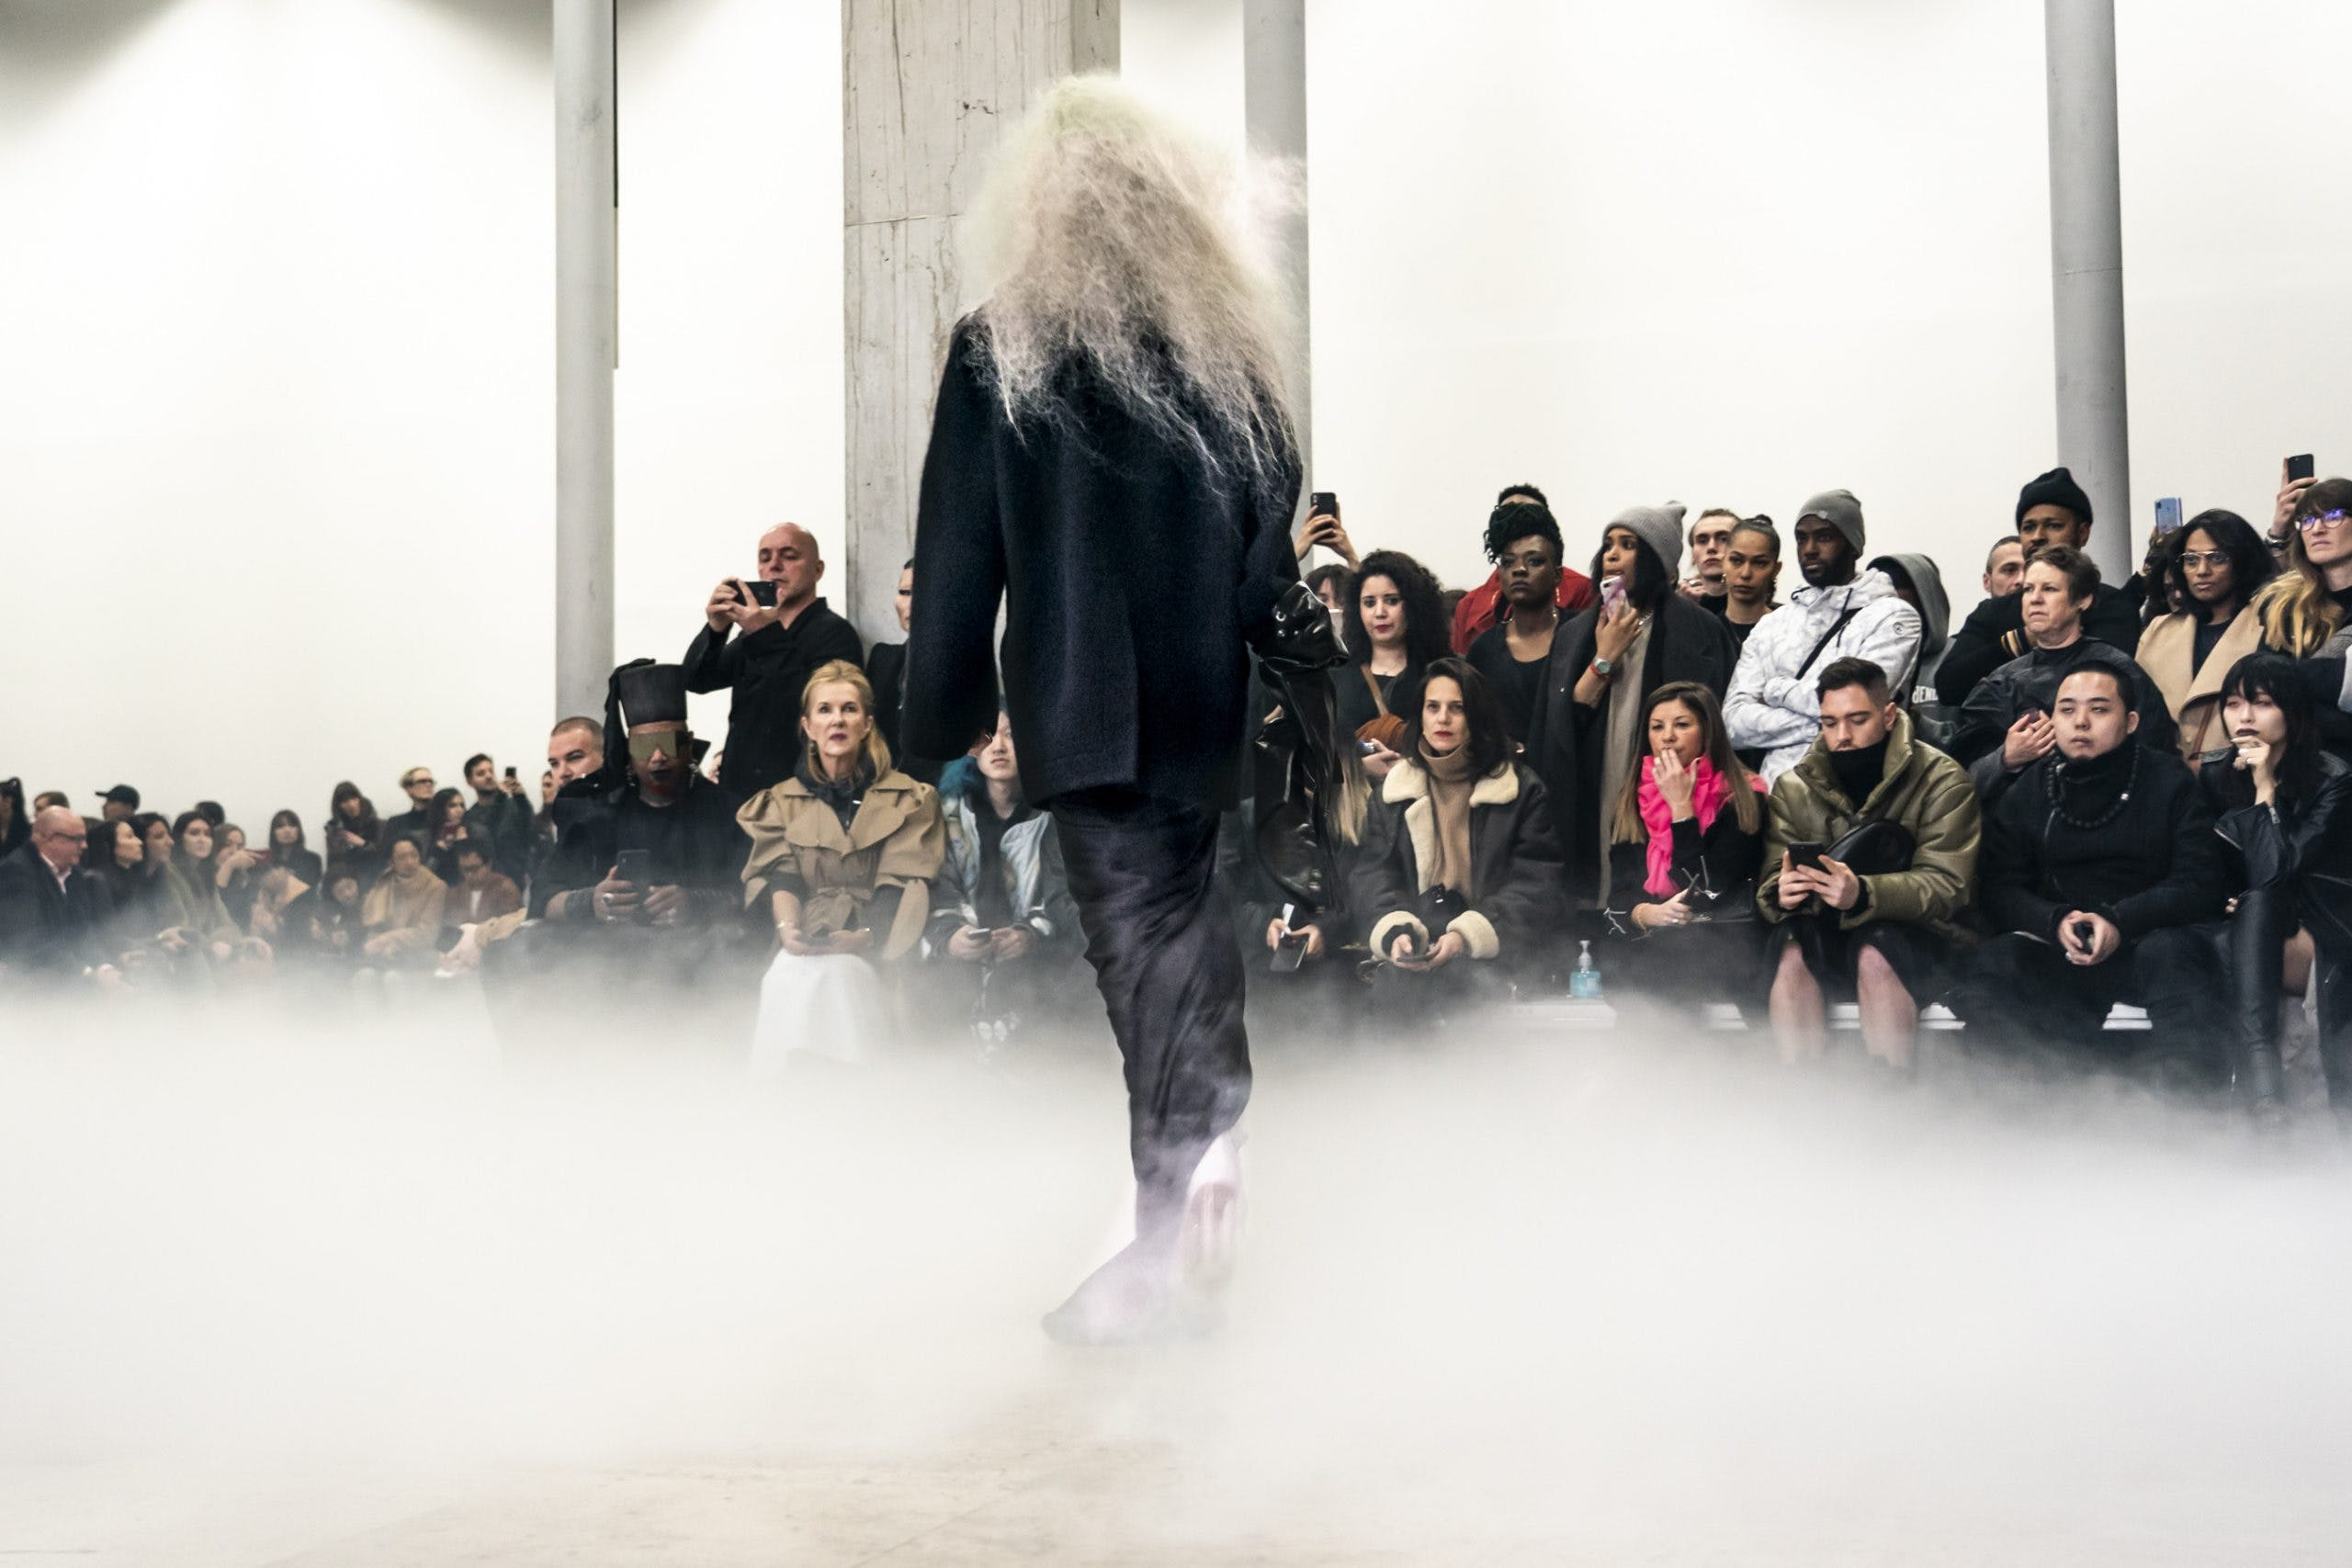 Rick Owens Runway Oversized Blazer Draped Skirt in Black Kowboy Kiss Boots With Transparent Heel Womens FW20 Performa